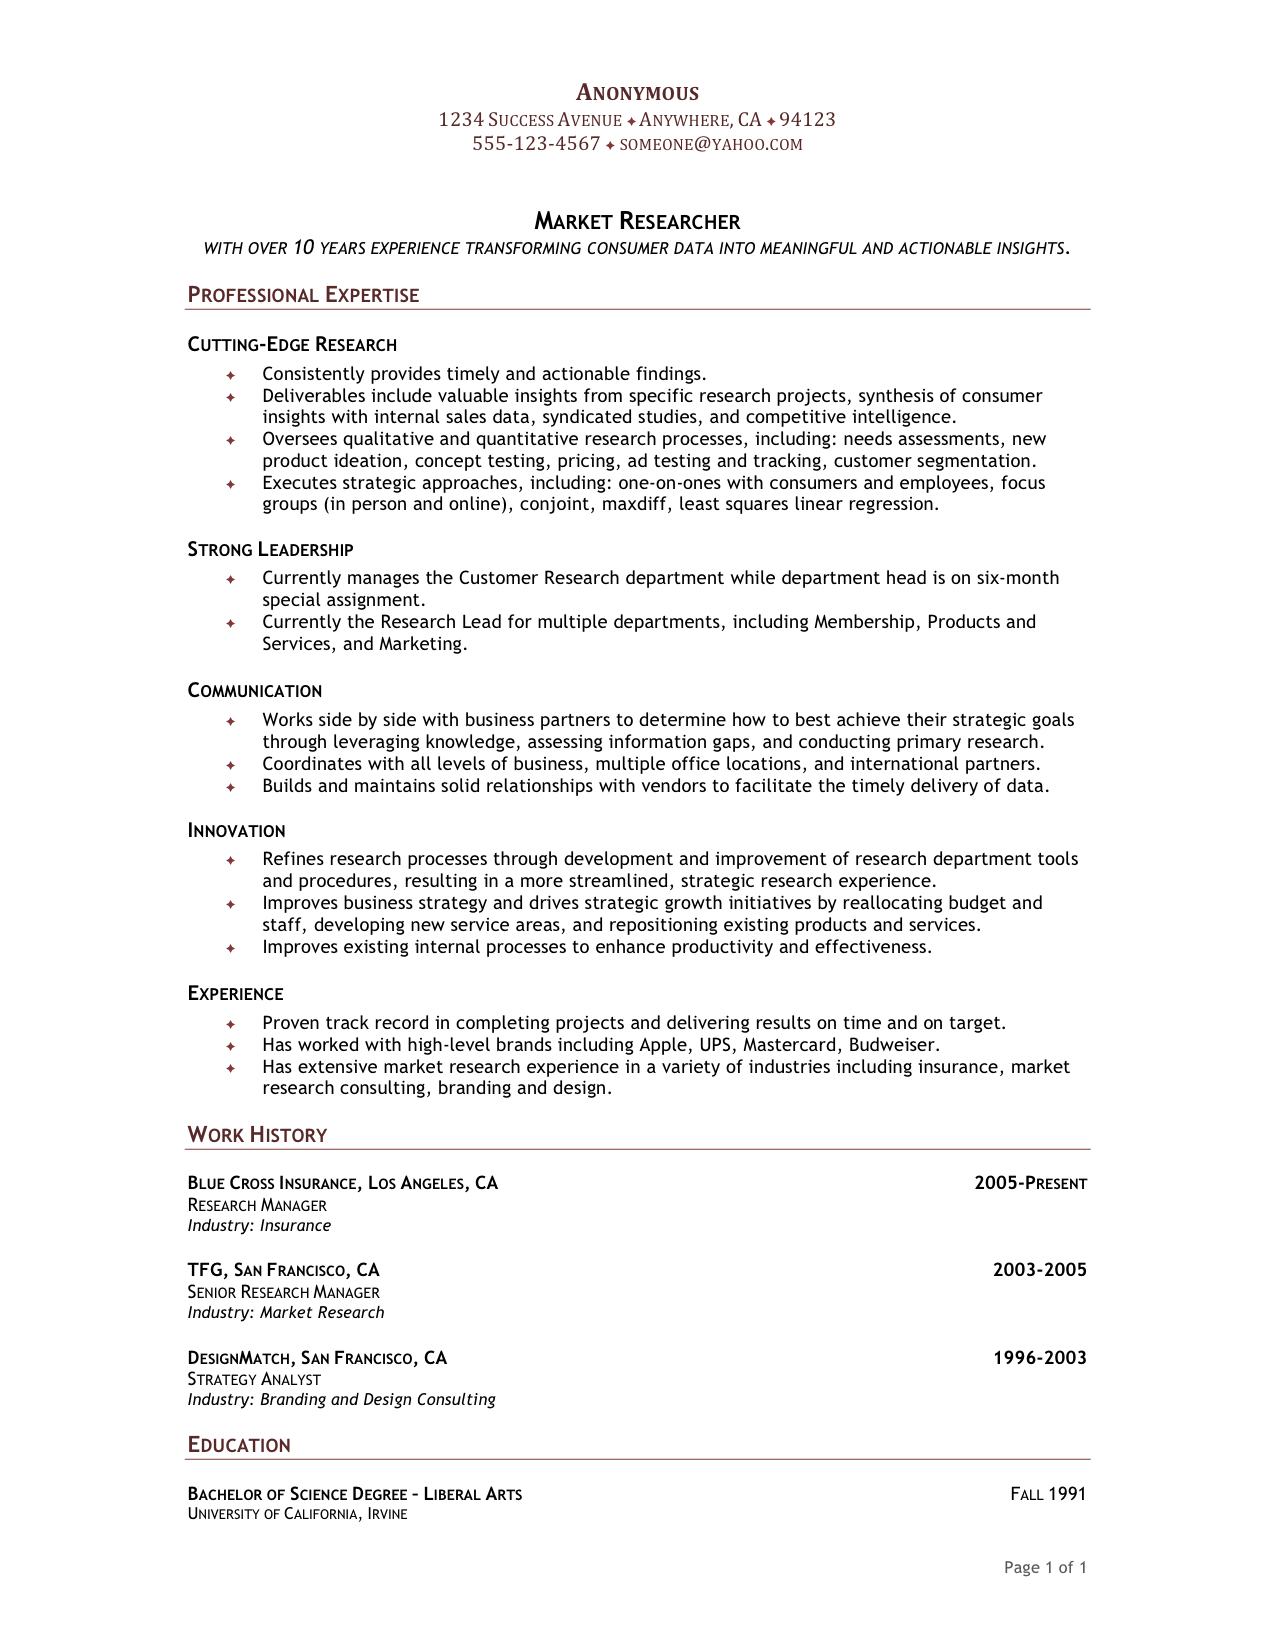 functional resume vs chronological   Physic.minimalistics.co